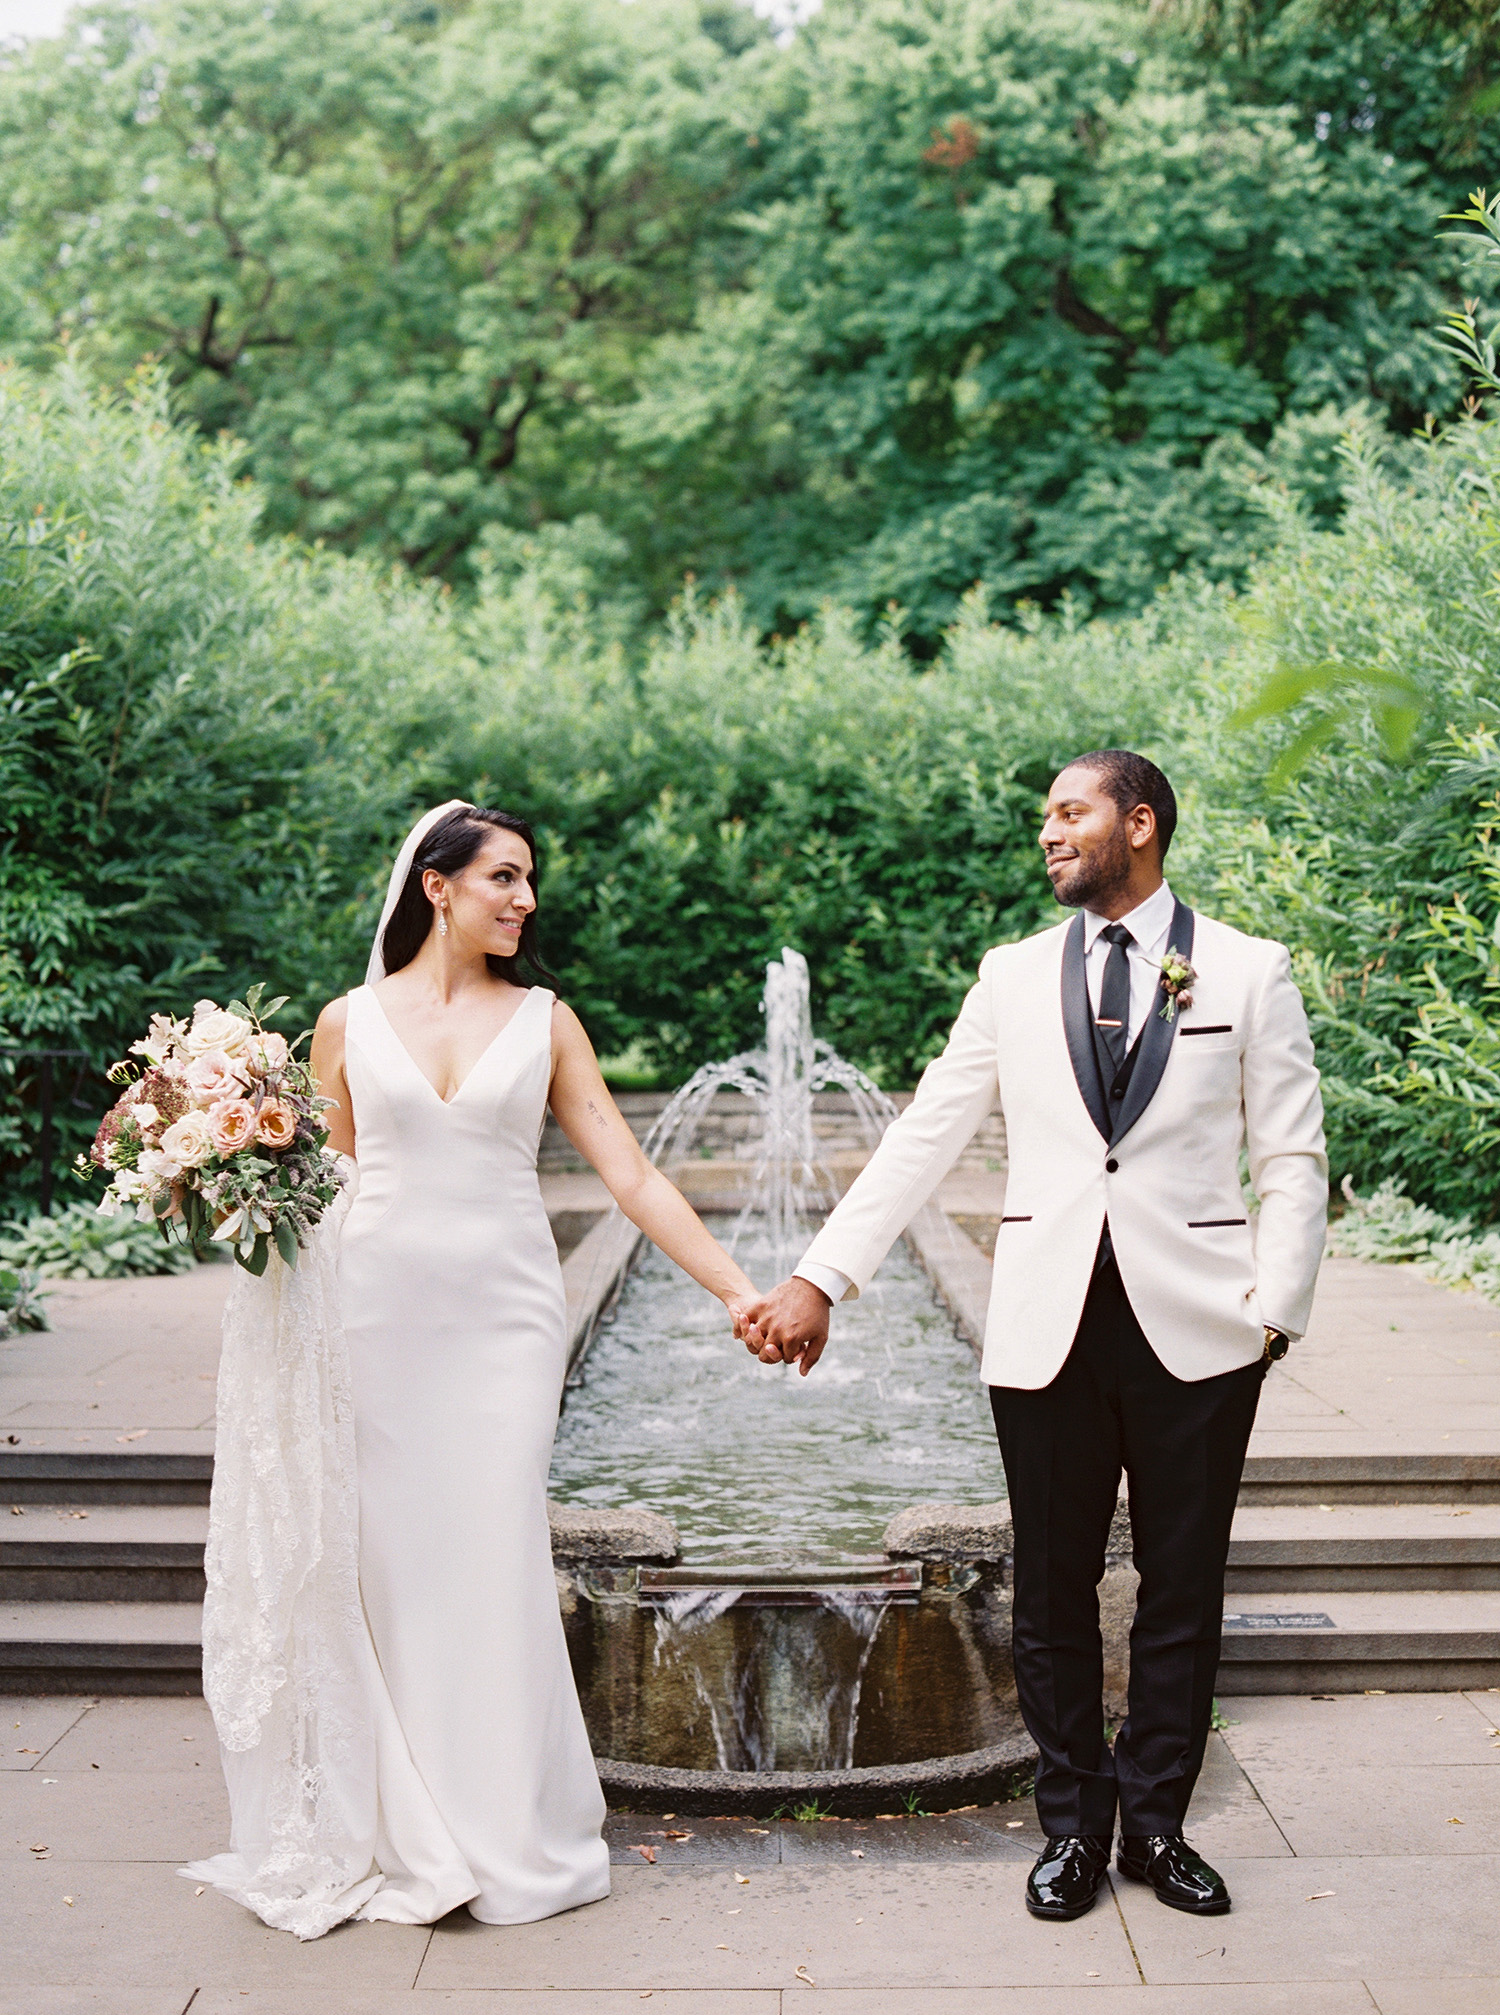 This Philadelphia Garden Wedding Was Full of Emotional Family Moments